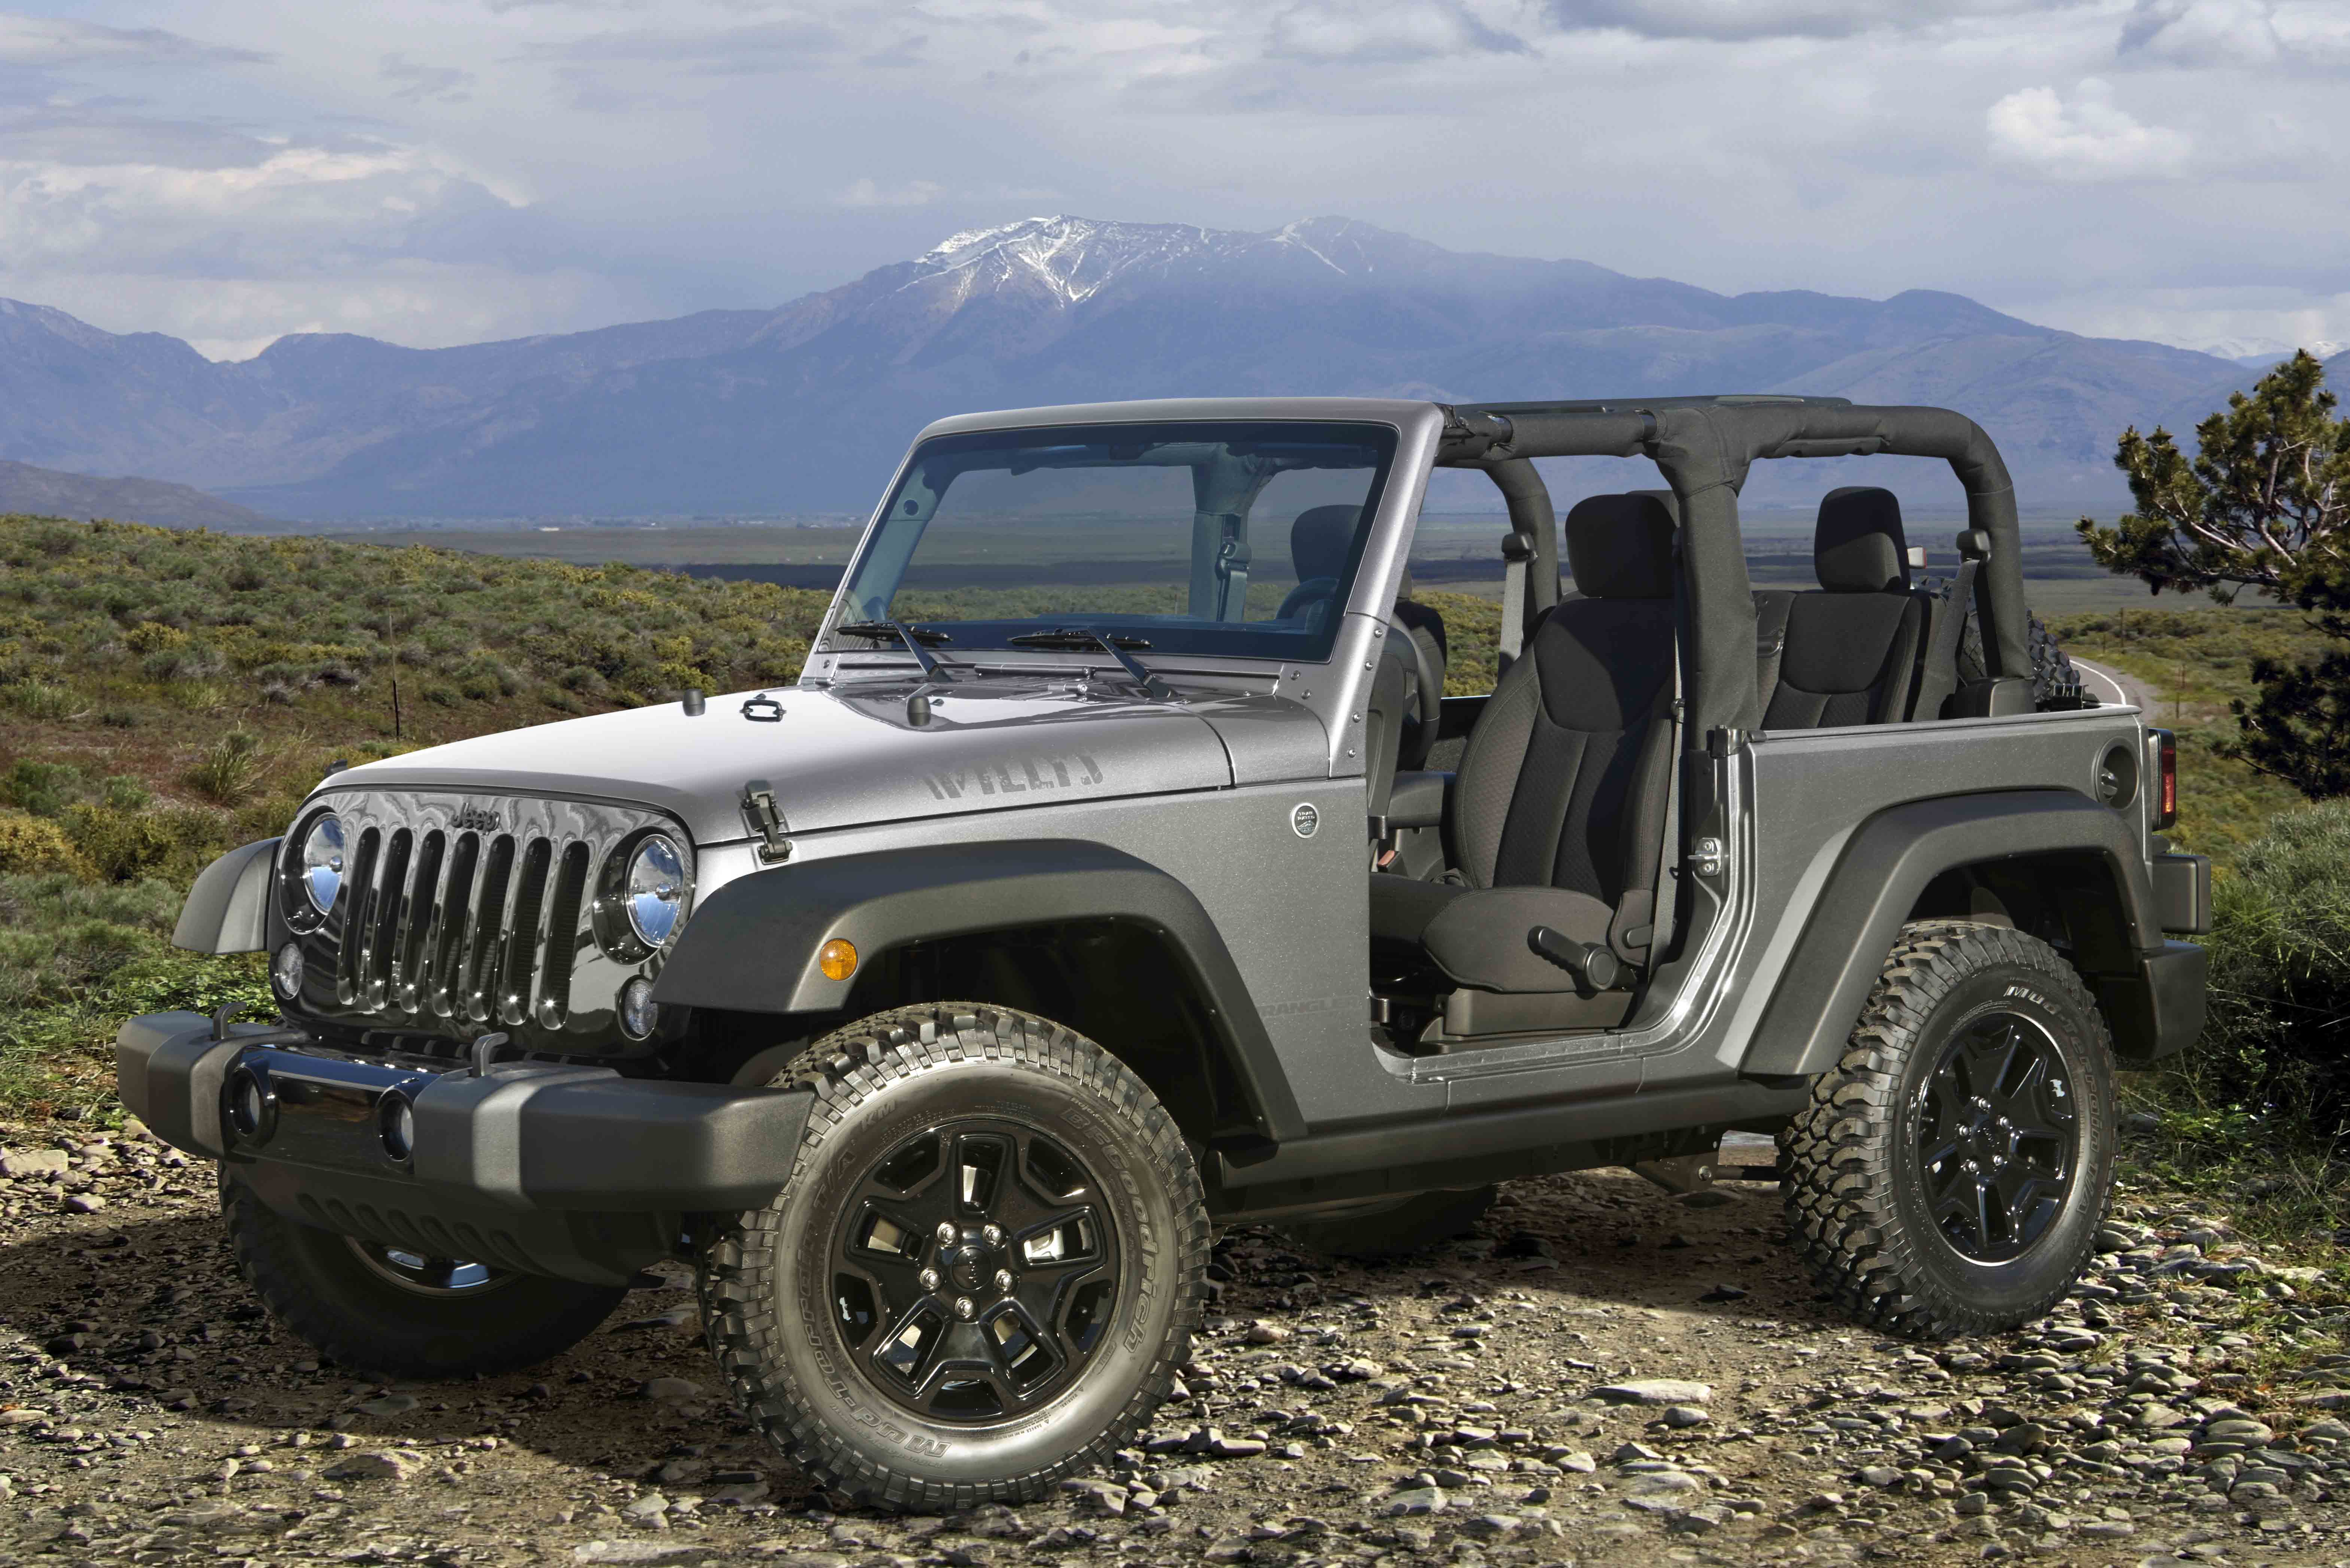 New Jeep available in Superior, WI at Superior Chrysler Dodge Jeep Ram